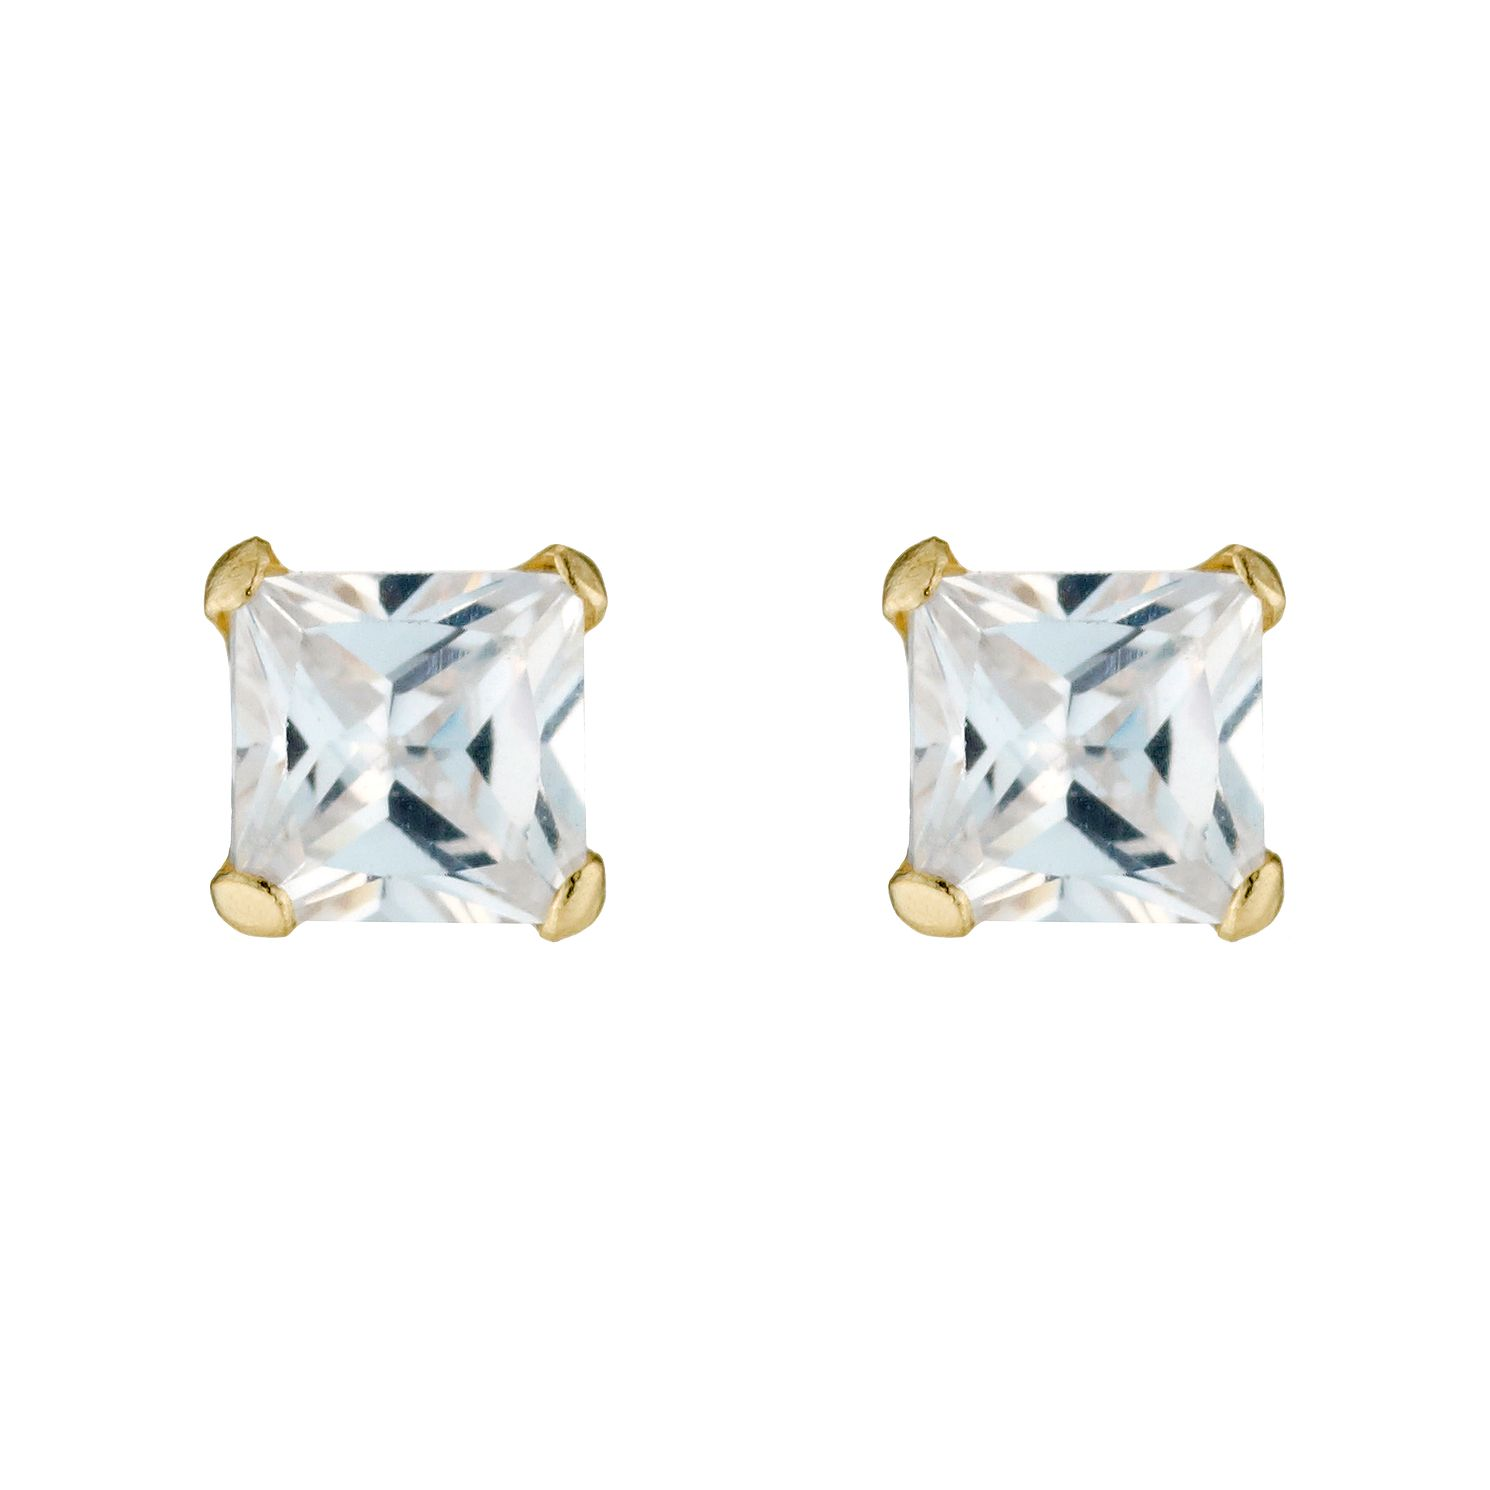 9ct Yellow Gold Cubic Zirconia Square 4mm Stud Earrings - Product number 3318281